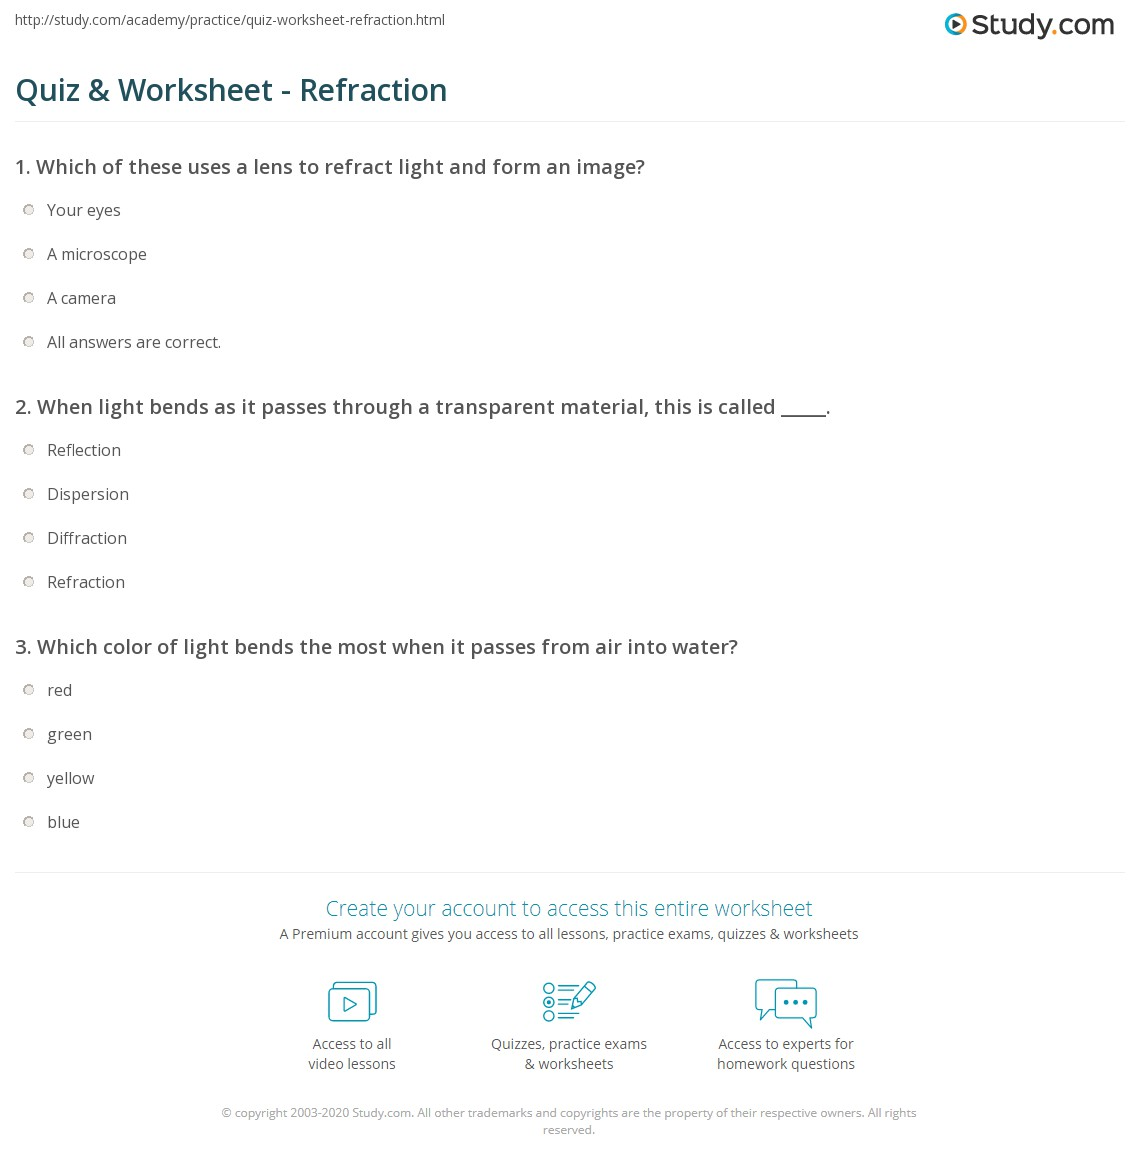 Quiz & Worksheet - Refraction | Study.com